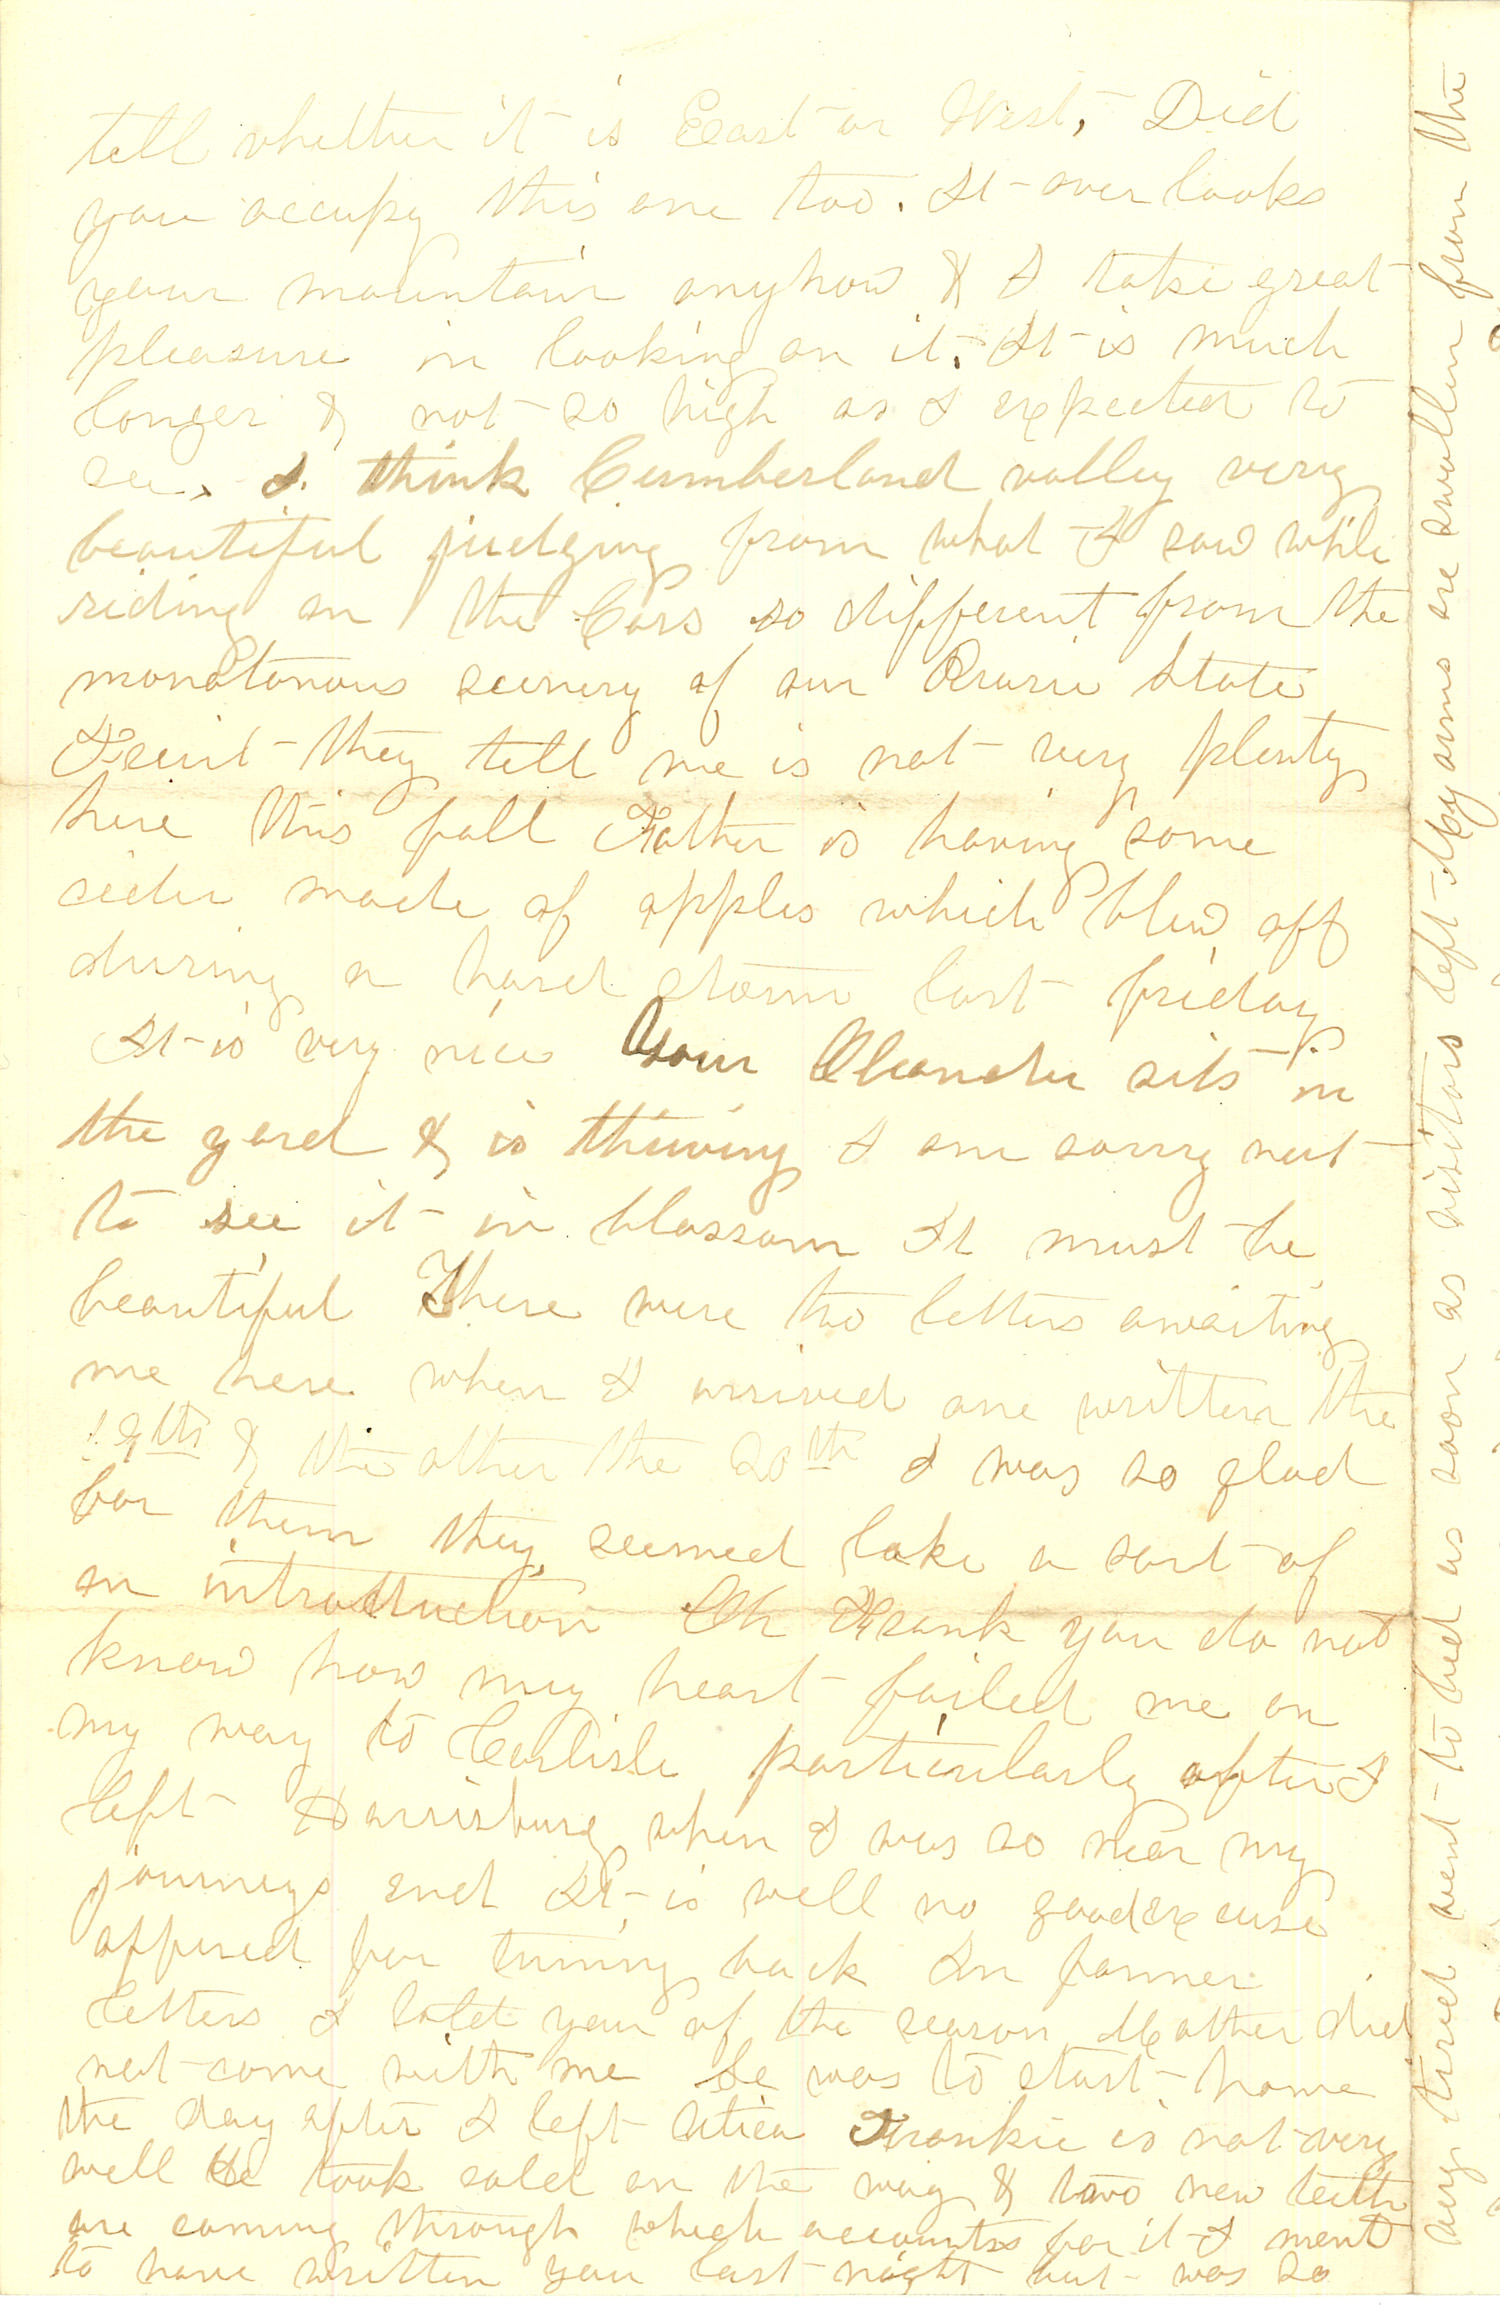 Joseph Culver Letter, August 28, 1863, Page 4